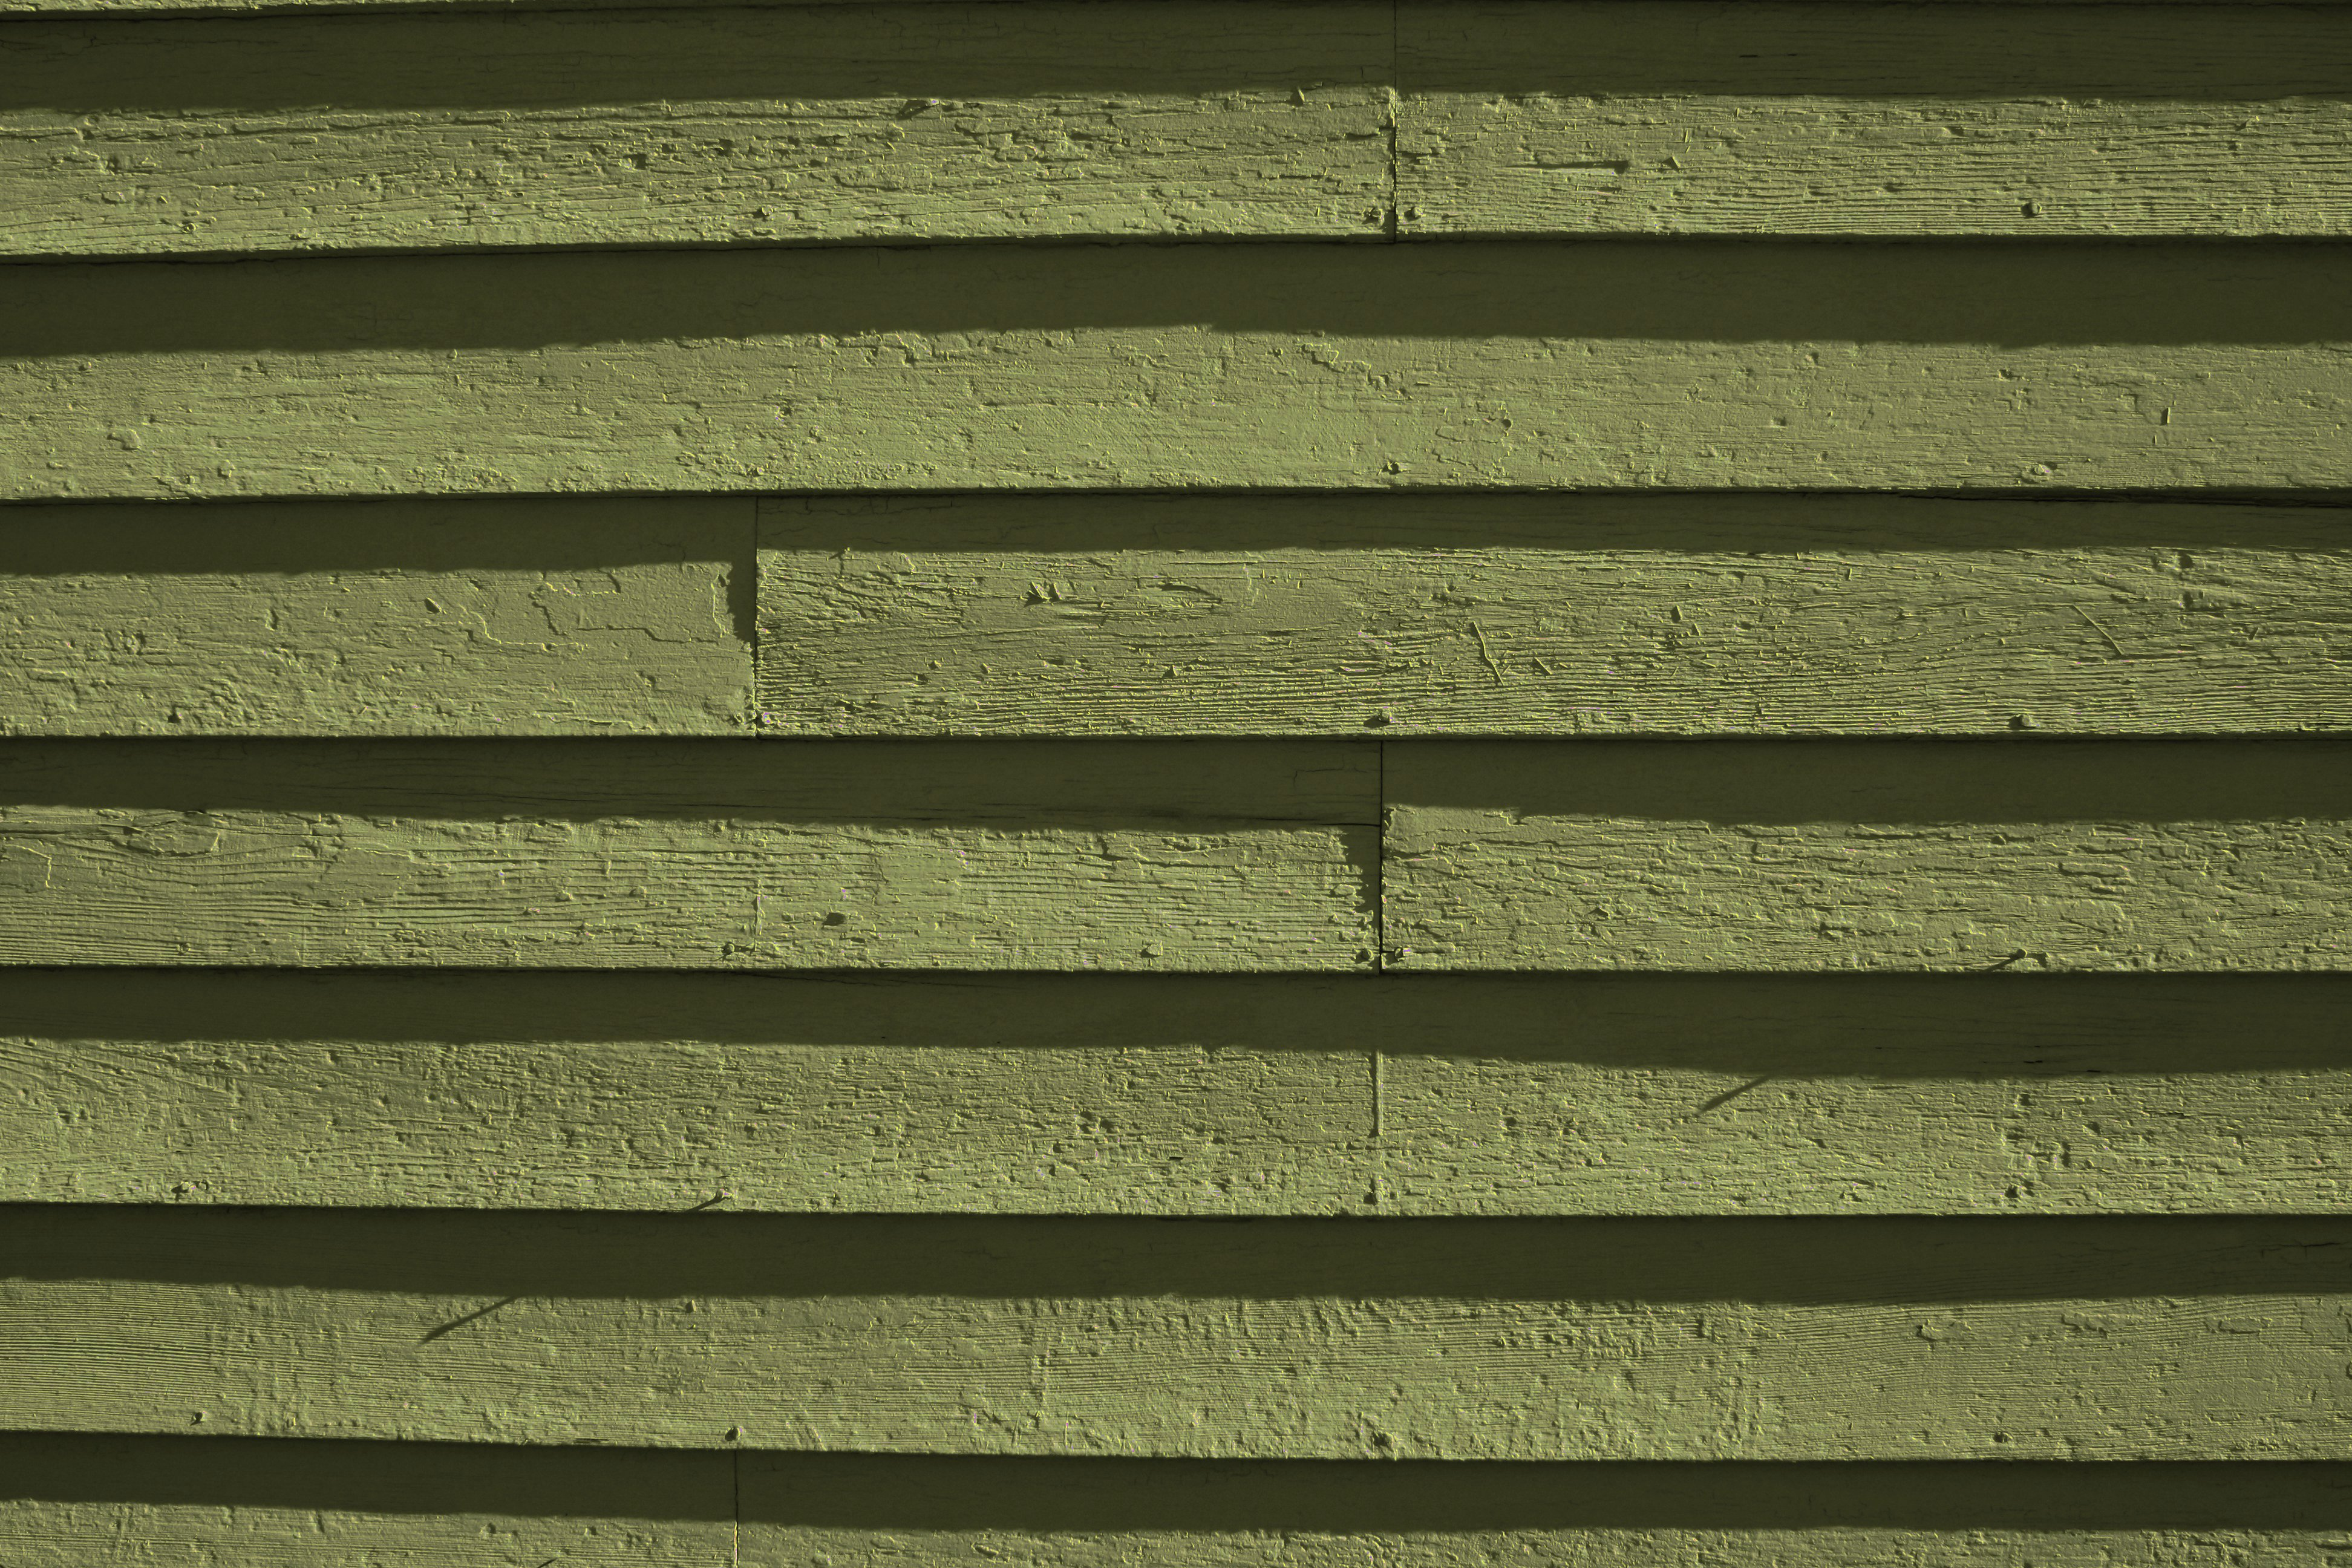 Army Green Painted Wooden Siding Texture Picture Free